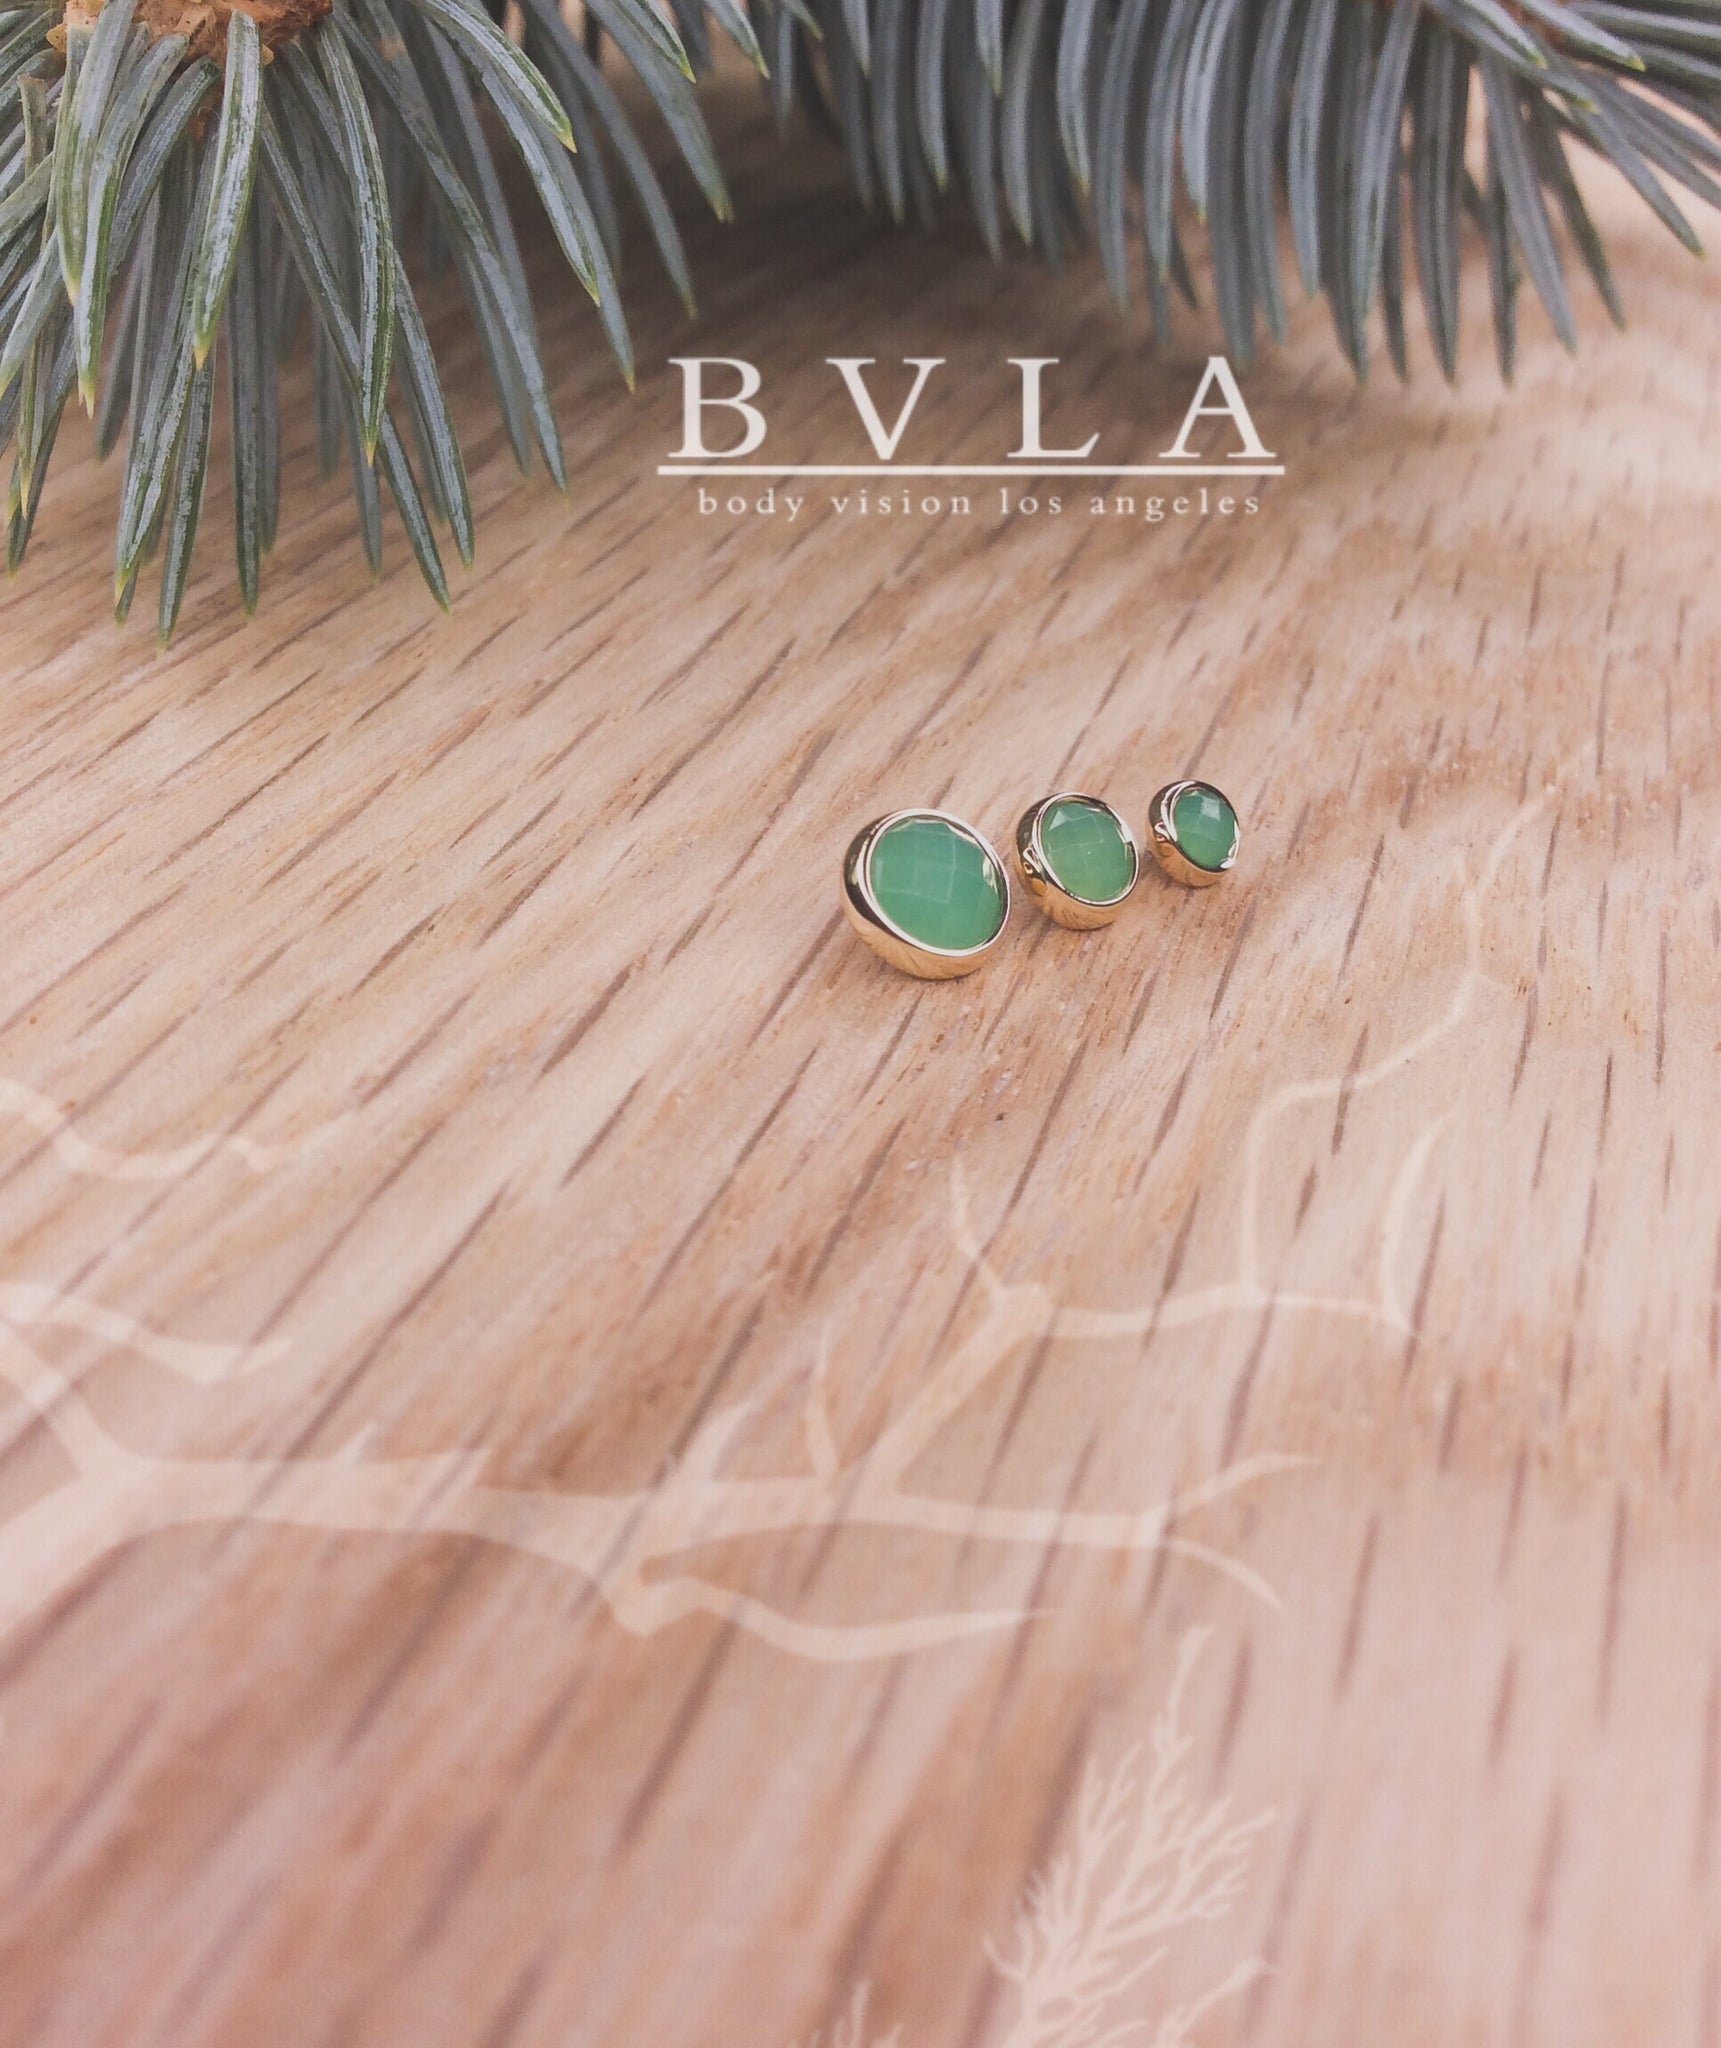 5mm Yellow Gold Rose Cut Chrysoprase End